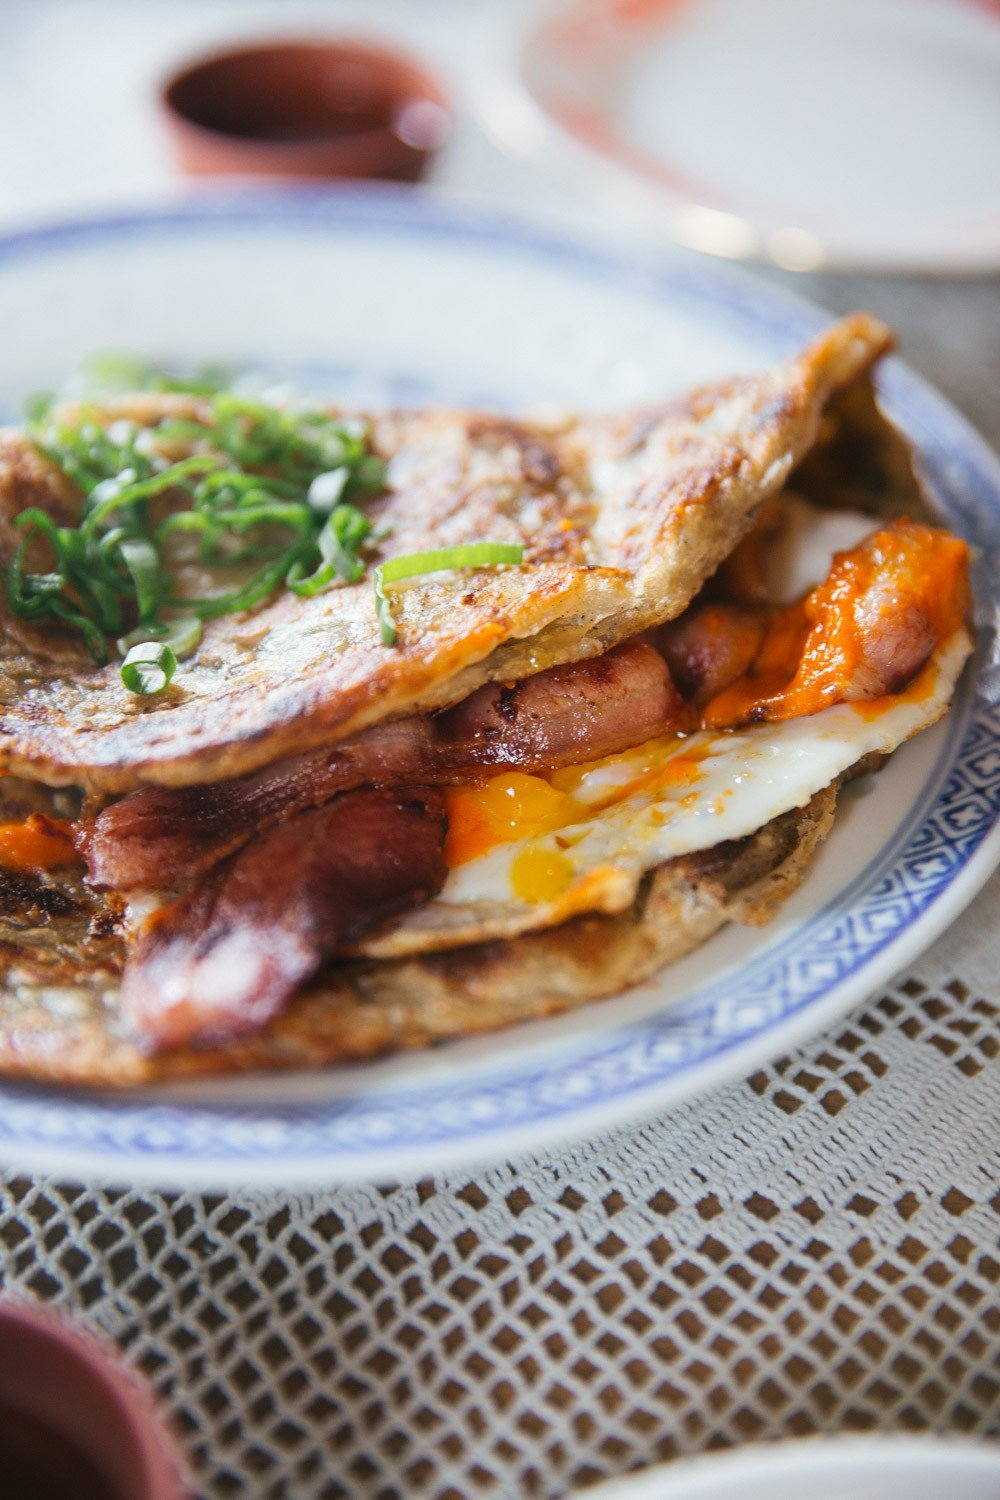 Scallion pancake stuffed with bacon and egg